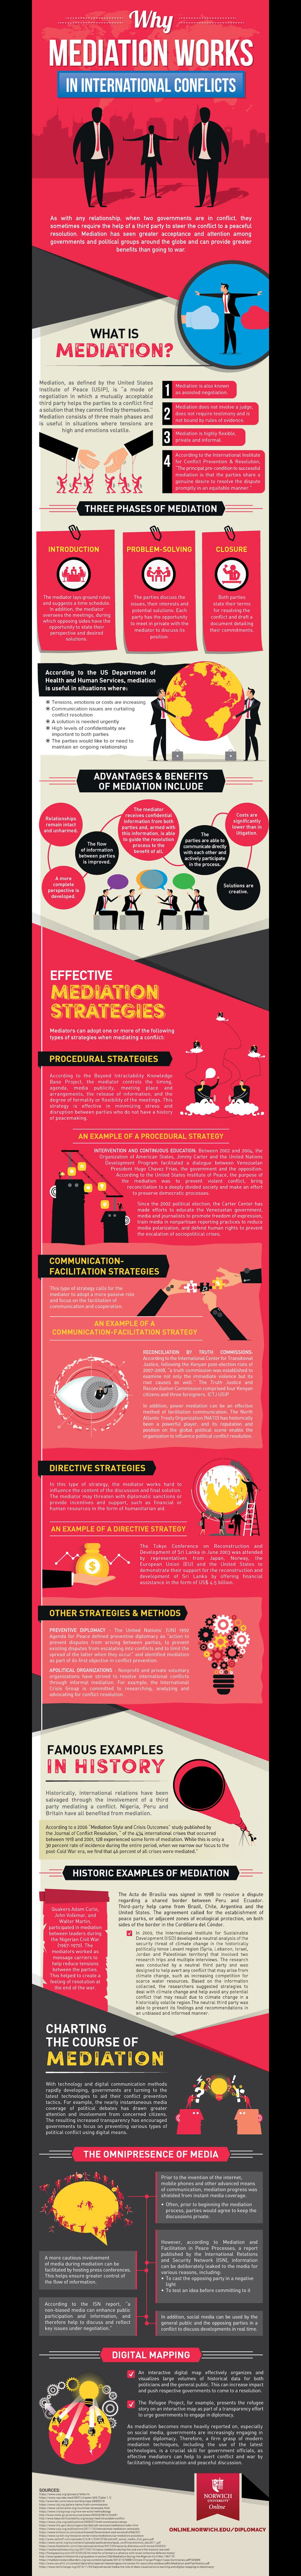 mediation in international conflicts infographic image